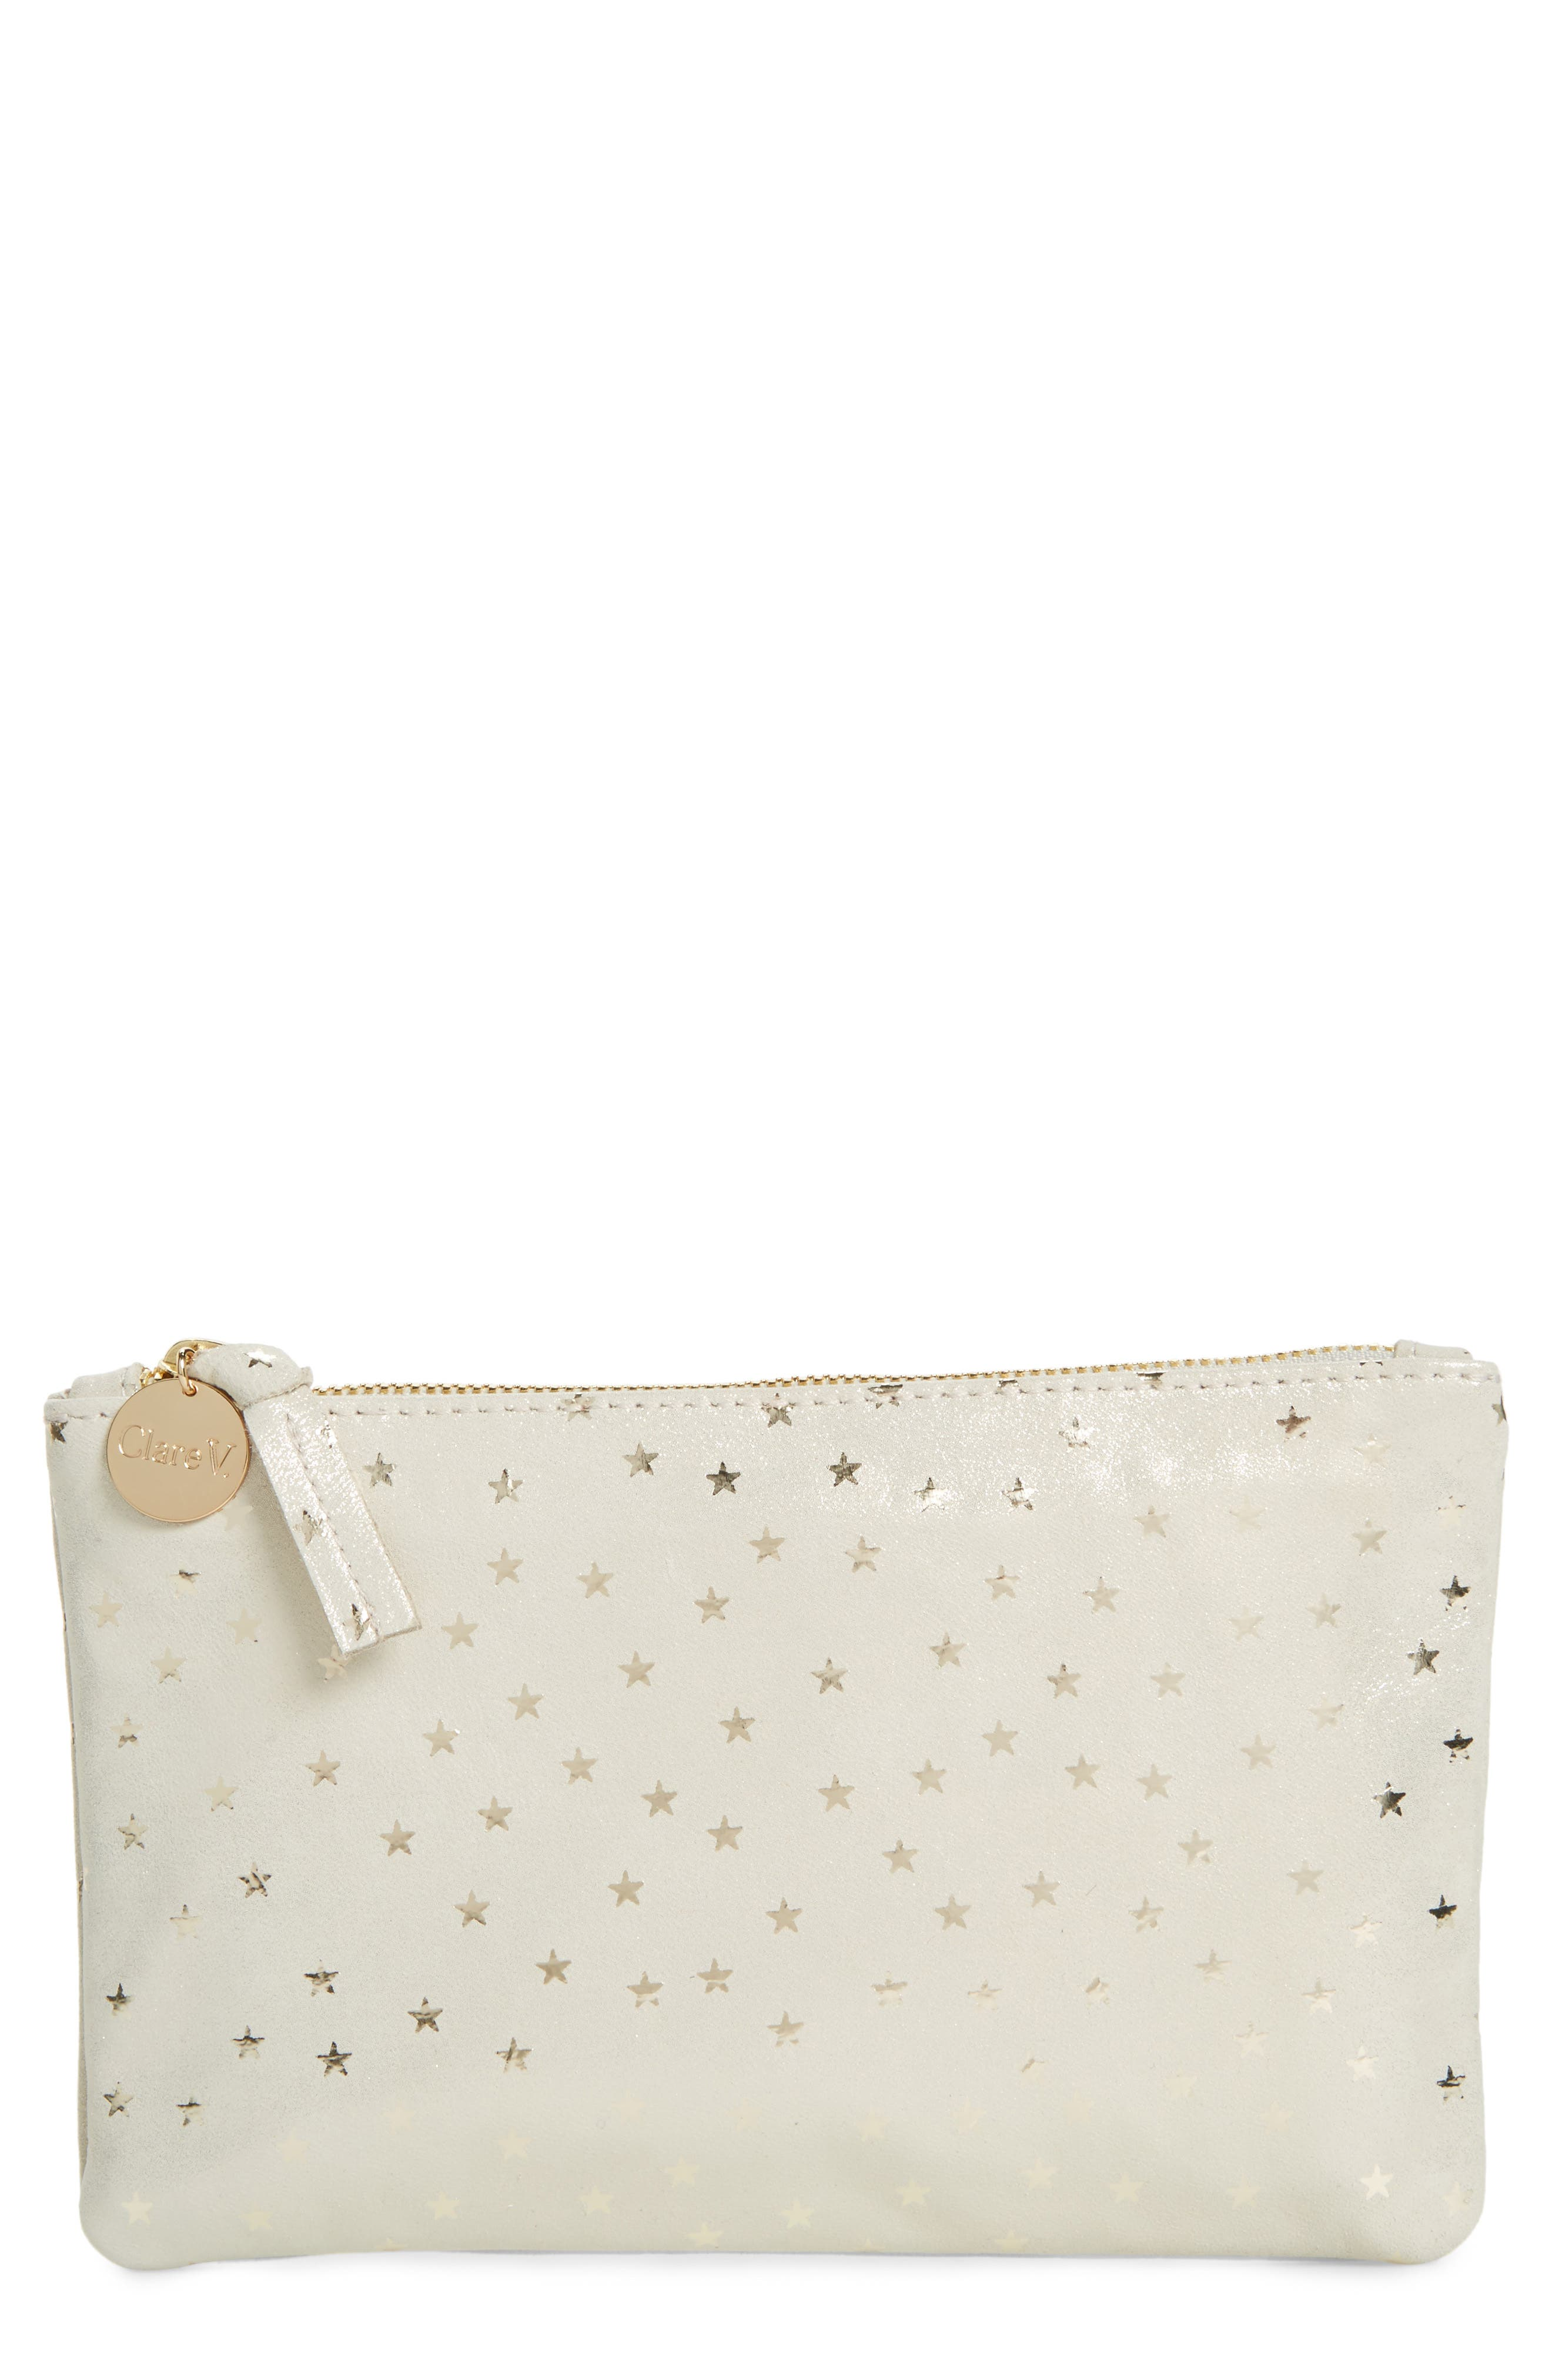 Supreme Star Shimmer Suede Wallet Clutch,                             Main thumbnail 1, color,                             Shimmer Stars